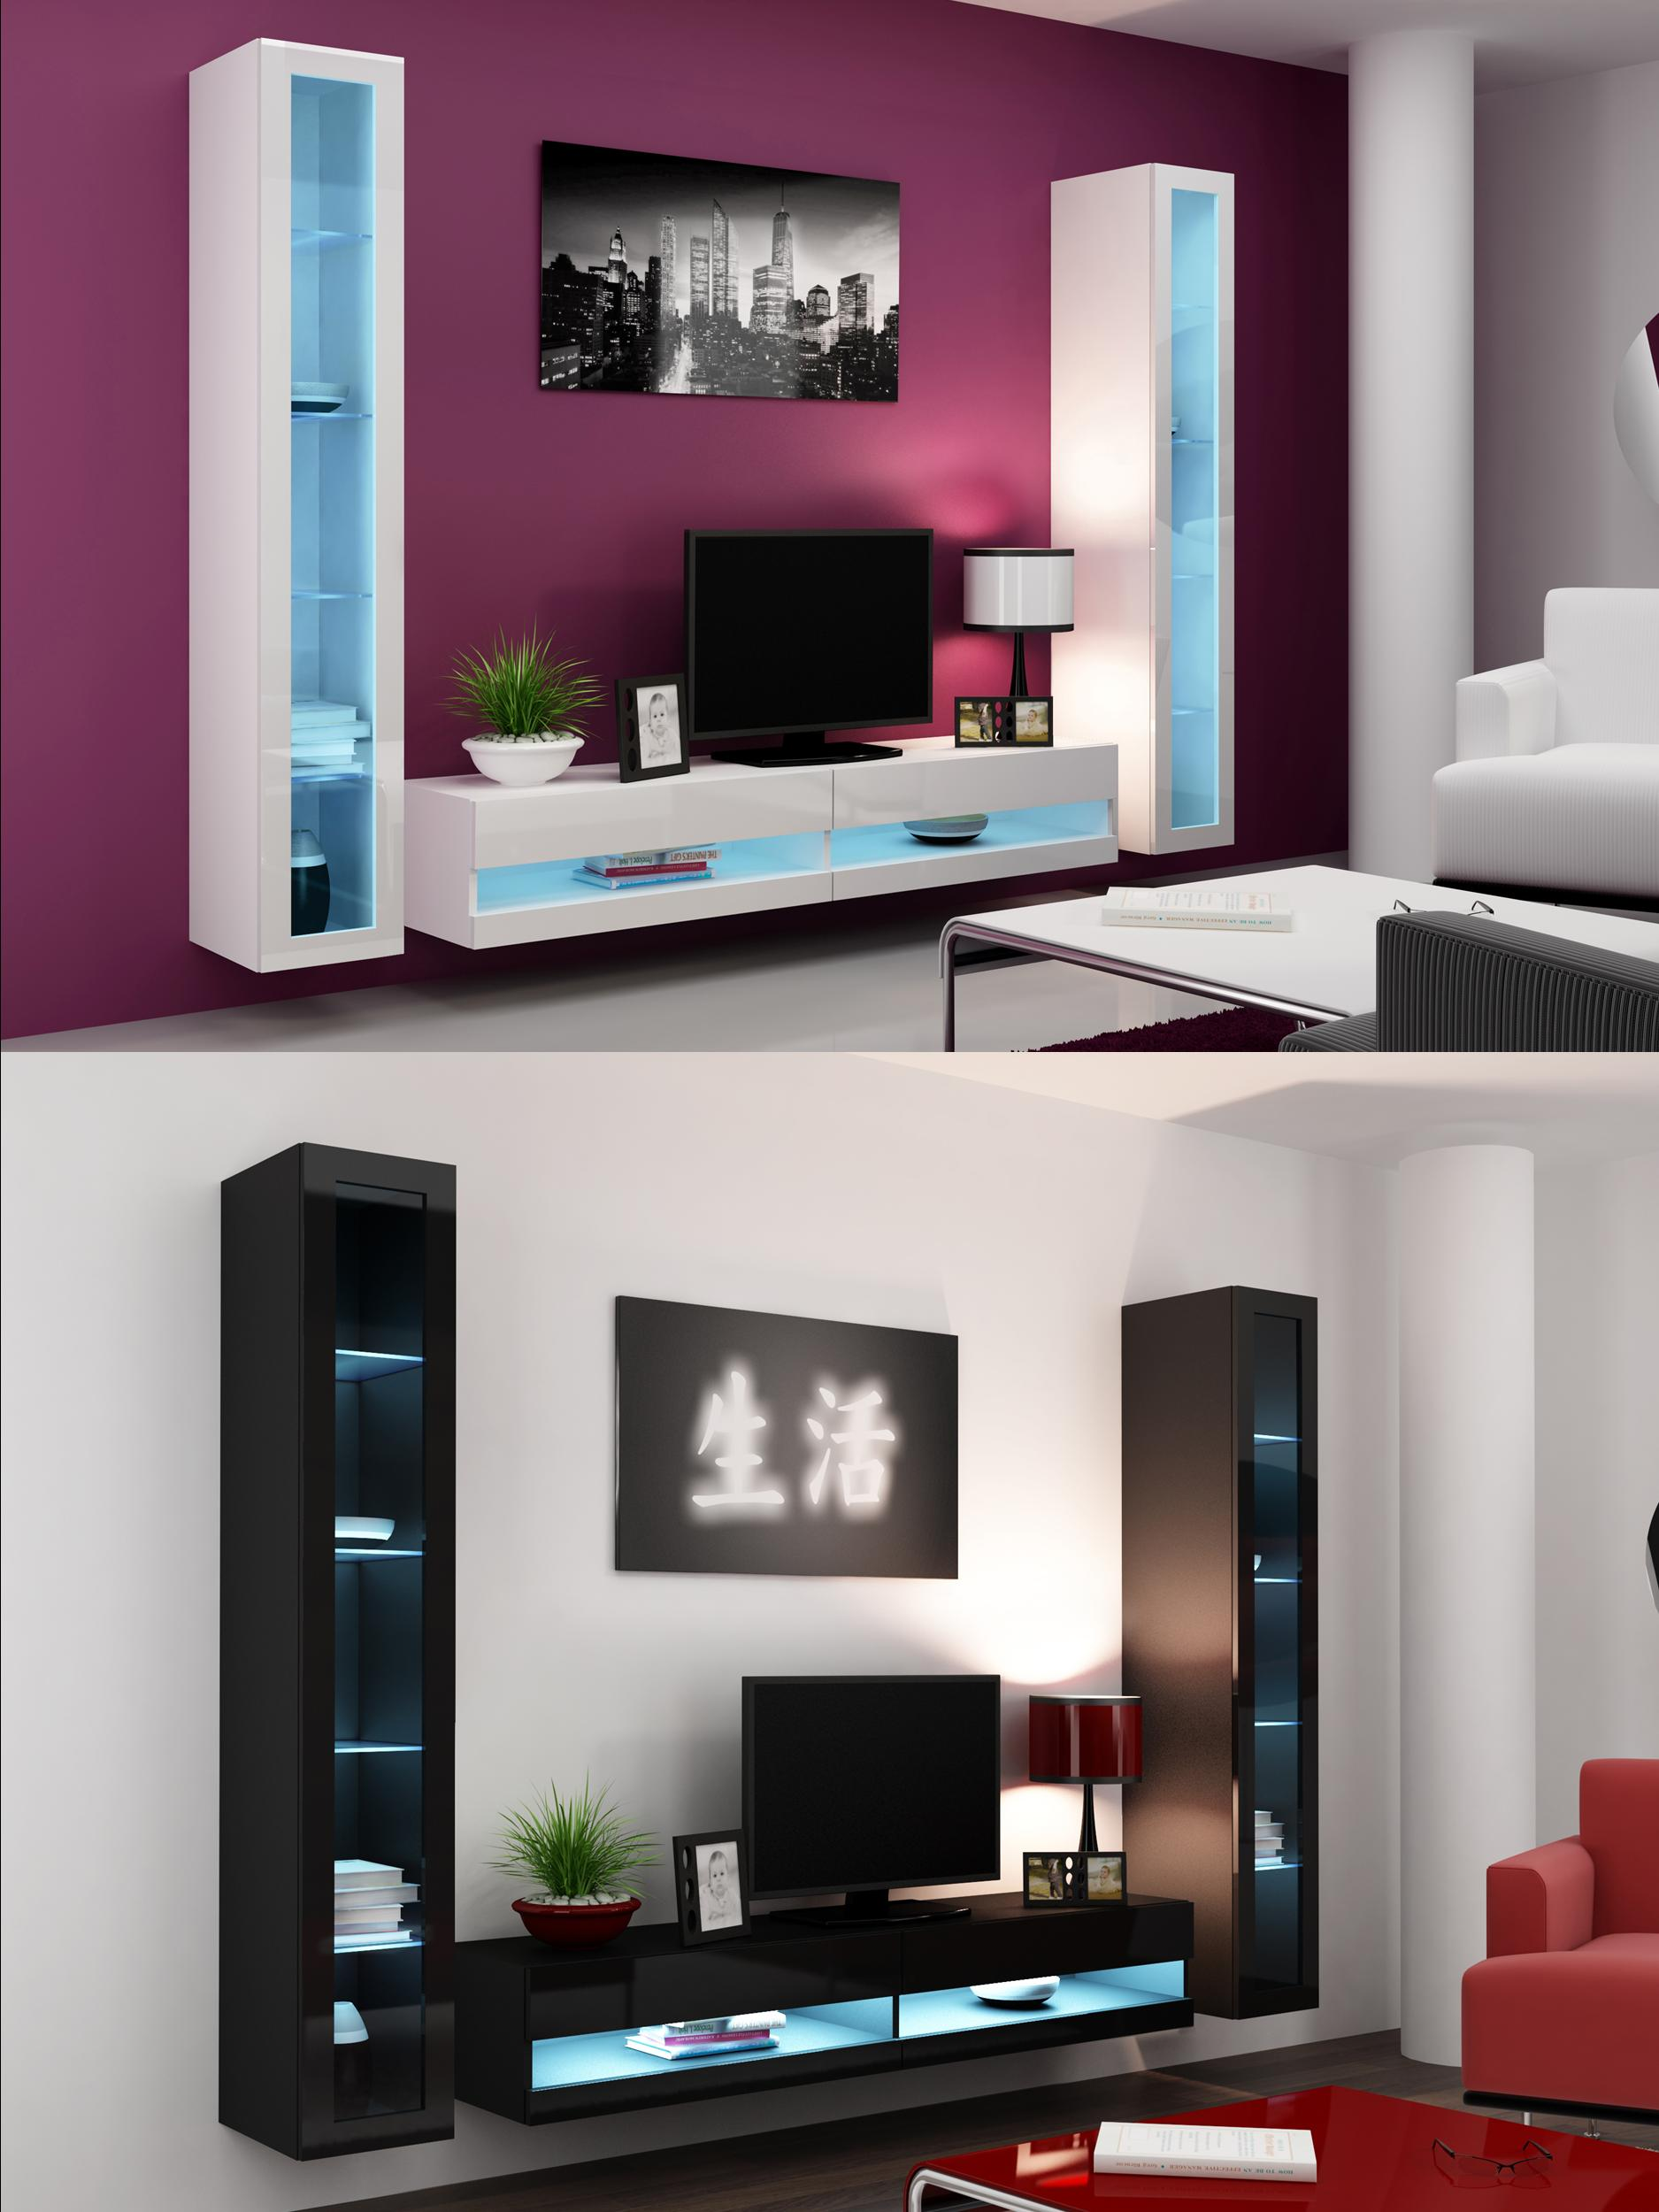 Led Tv Design Interiors Design # Meuble Design Tv Mural